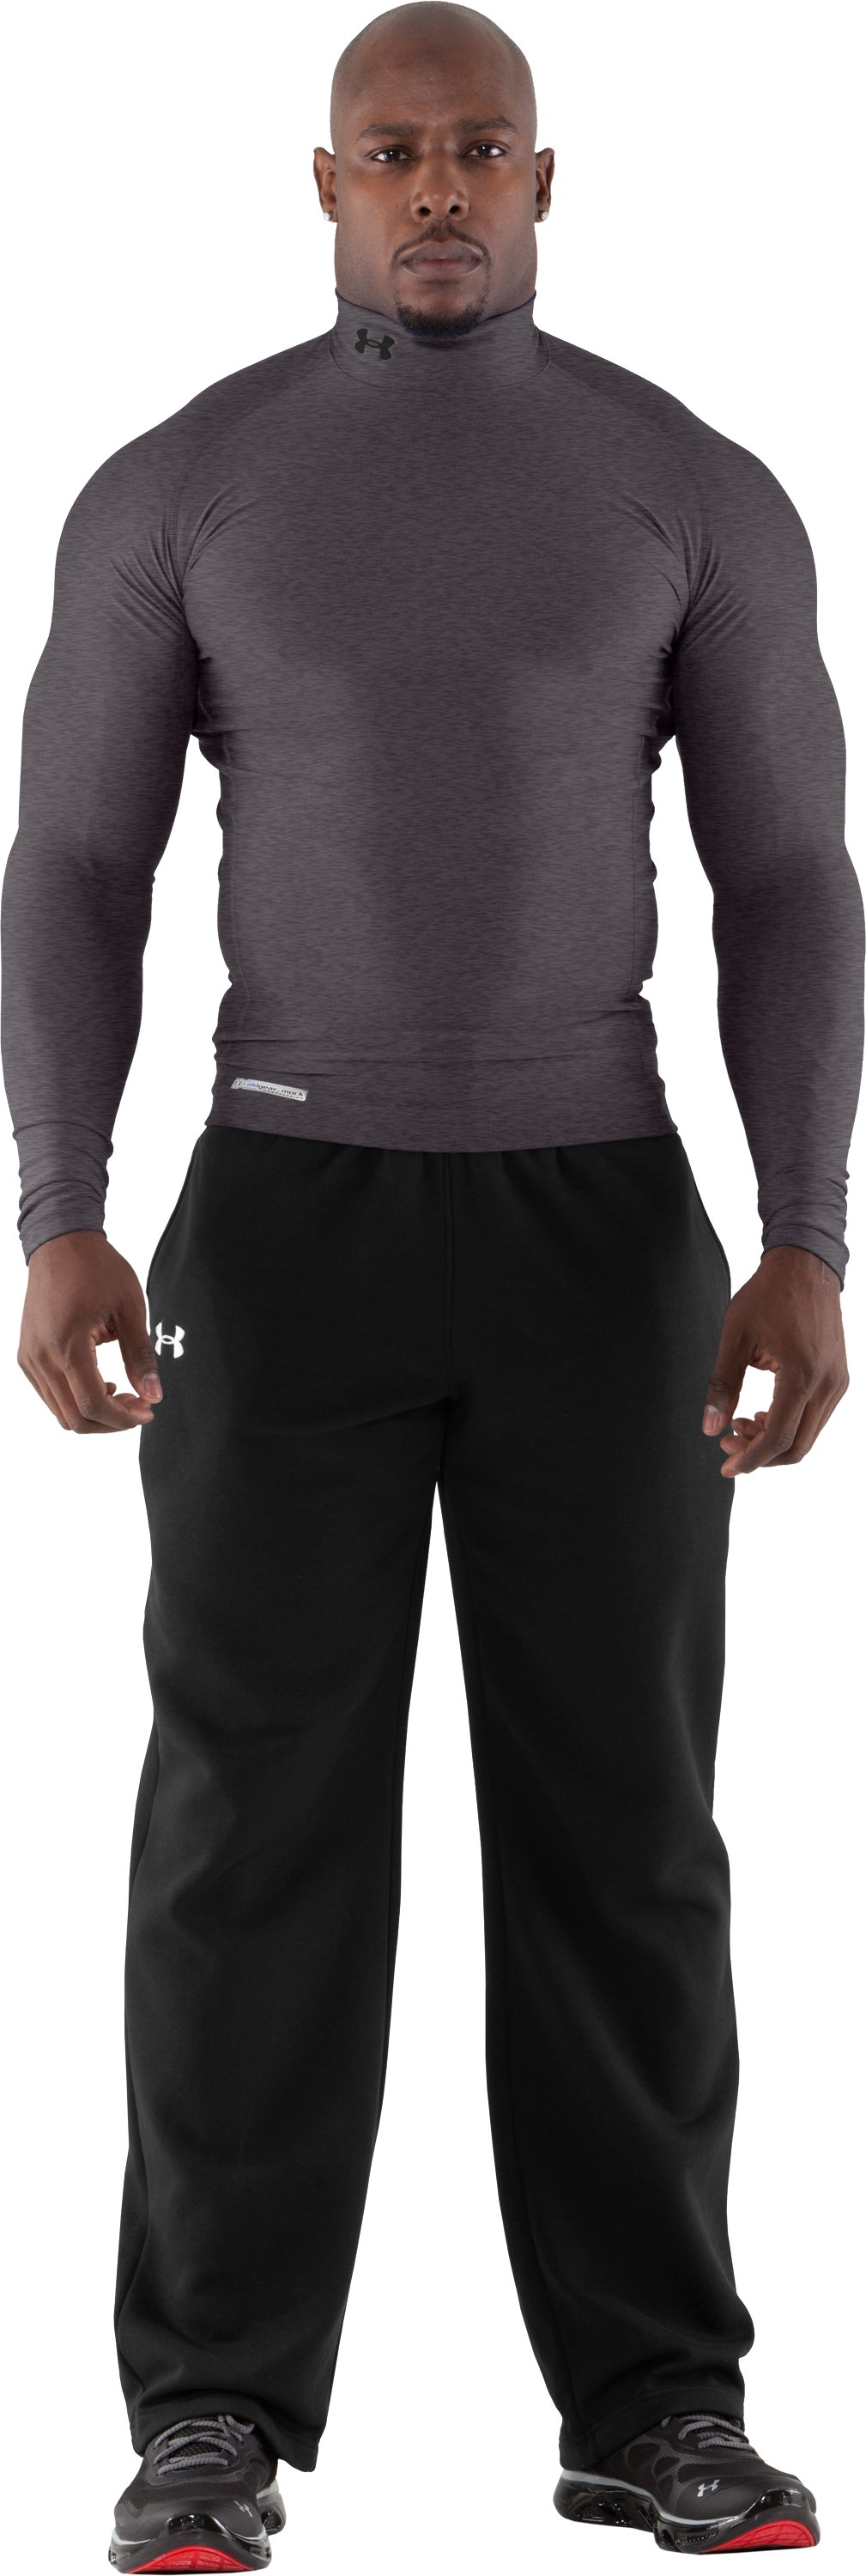 Men's ColdGear® Evo Long Sleeve Compression Mock, Carbon Heather